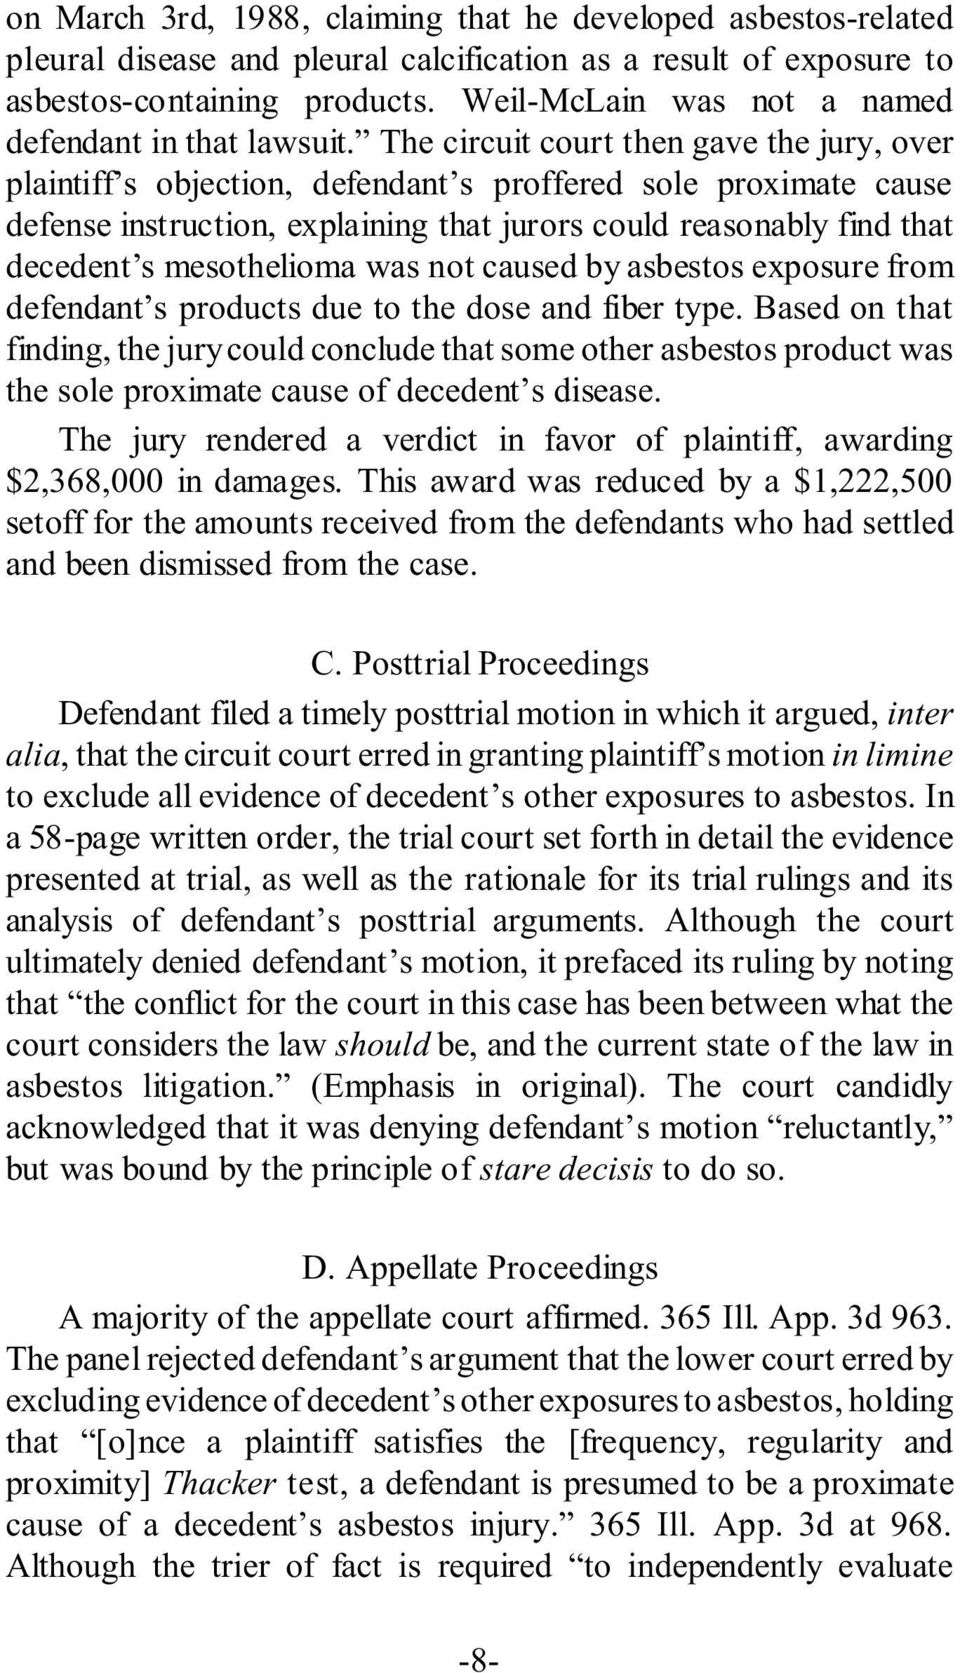 The circuit court then gave the jury, over plaintiff s objection, defendant s proffered sole proximate cause defense instruction, explaining that jurors could reasonably find that decedent s